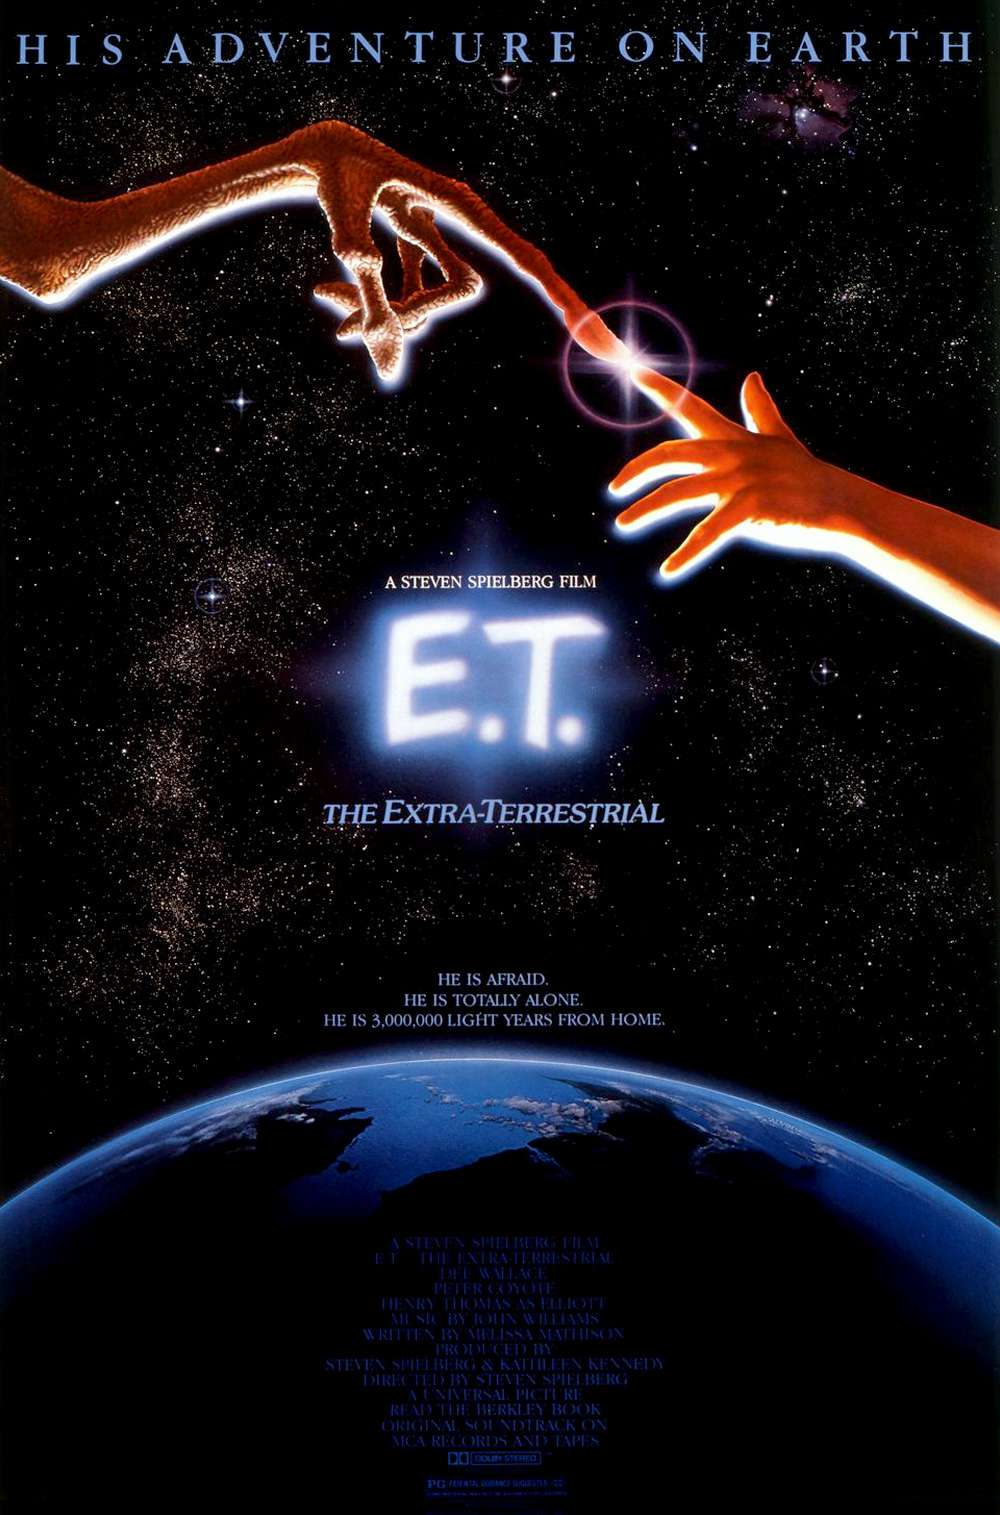 Poster for E.T. the Extra-Terrestrial (1982)